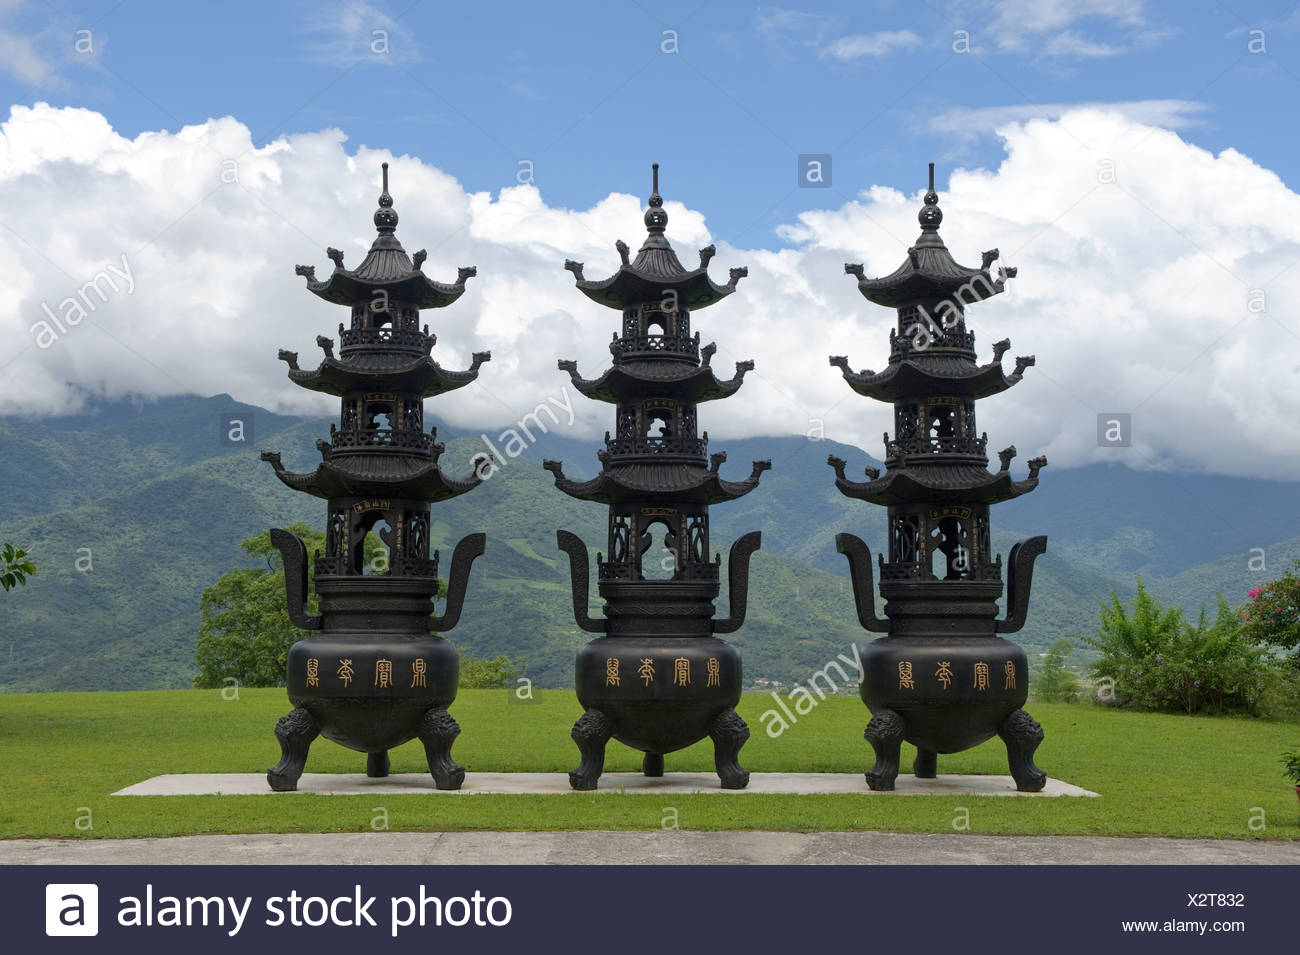 Asia, Taiwan, temple, Dong Fu Zan, East River Valley, religion - Stock Image